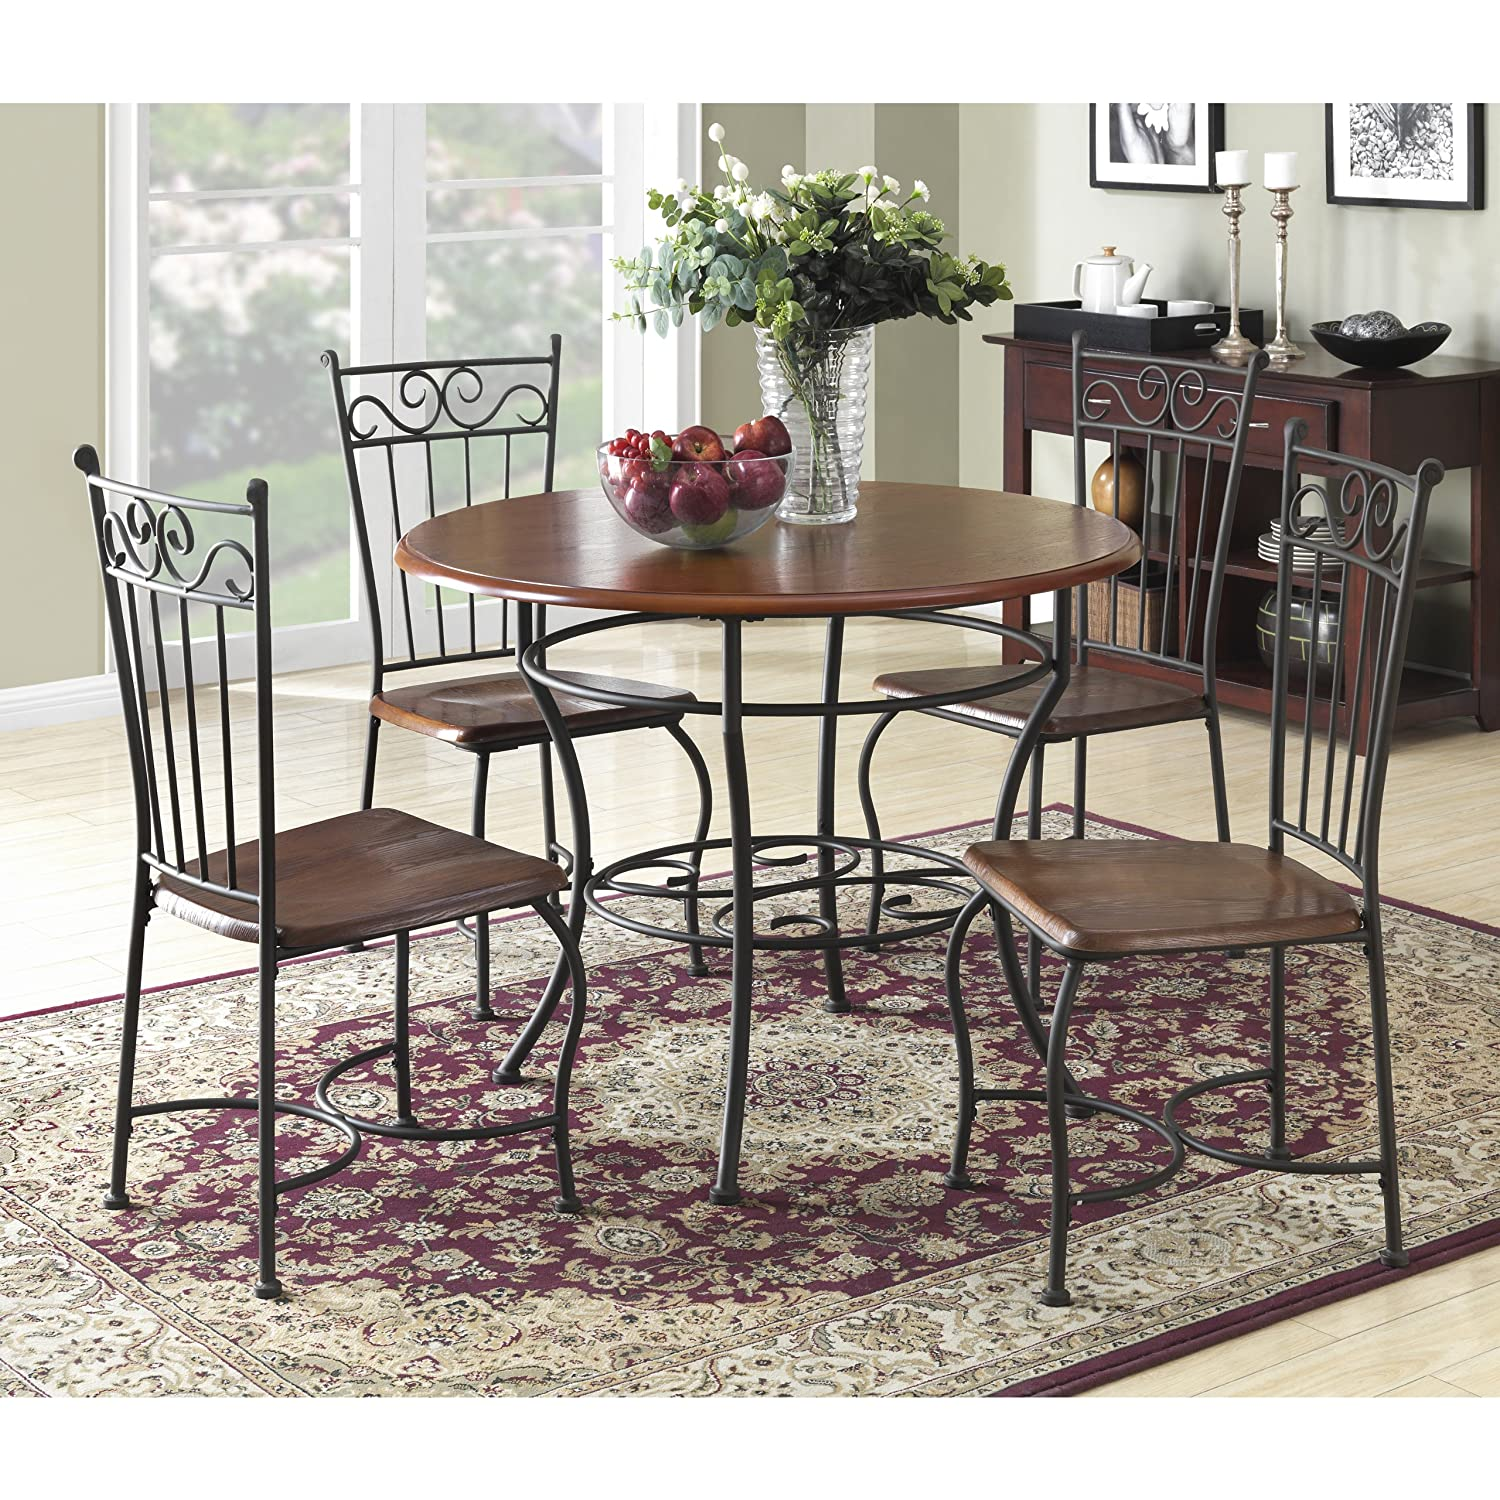 Amazon.com   Dorel Living 5 Piece Wood And Metal Cafe Style Dinette Set For  Kitchen Or Living Room   Table U0026 Chair Sets